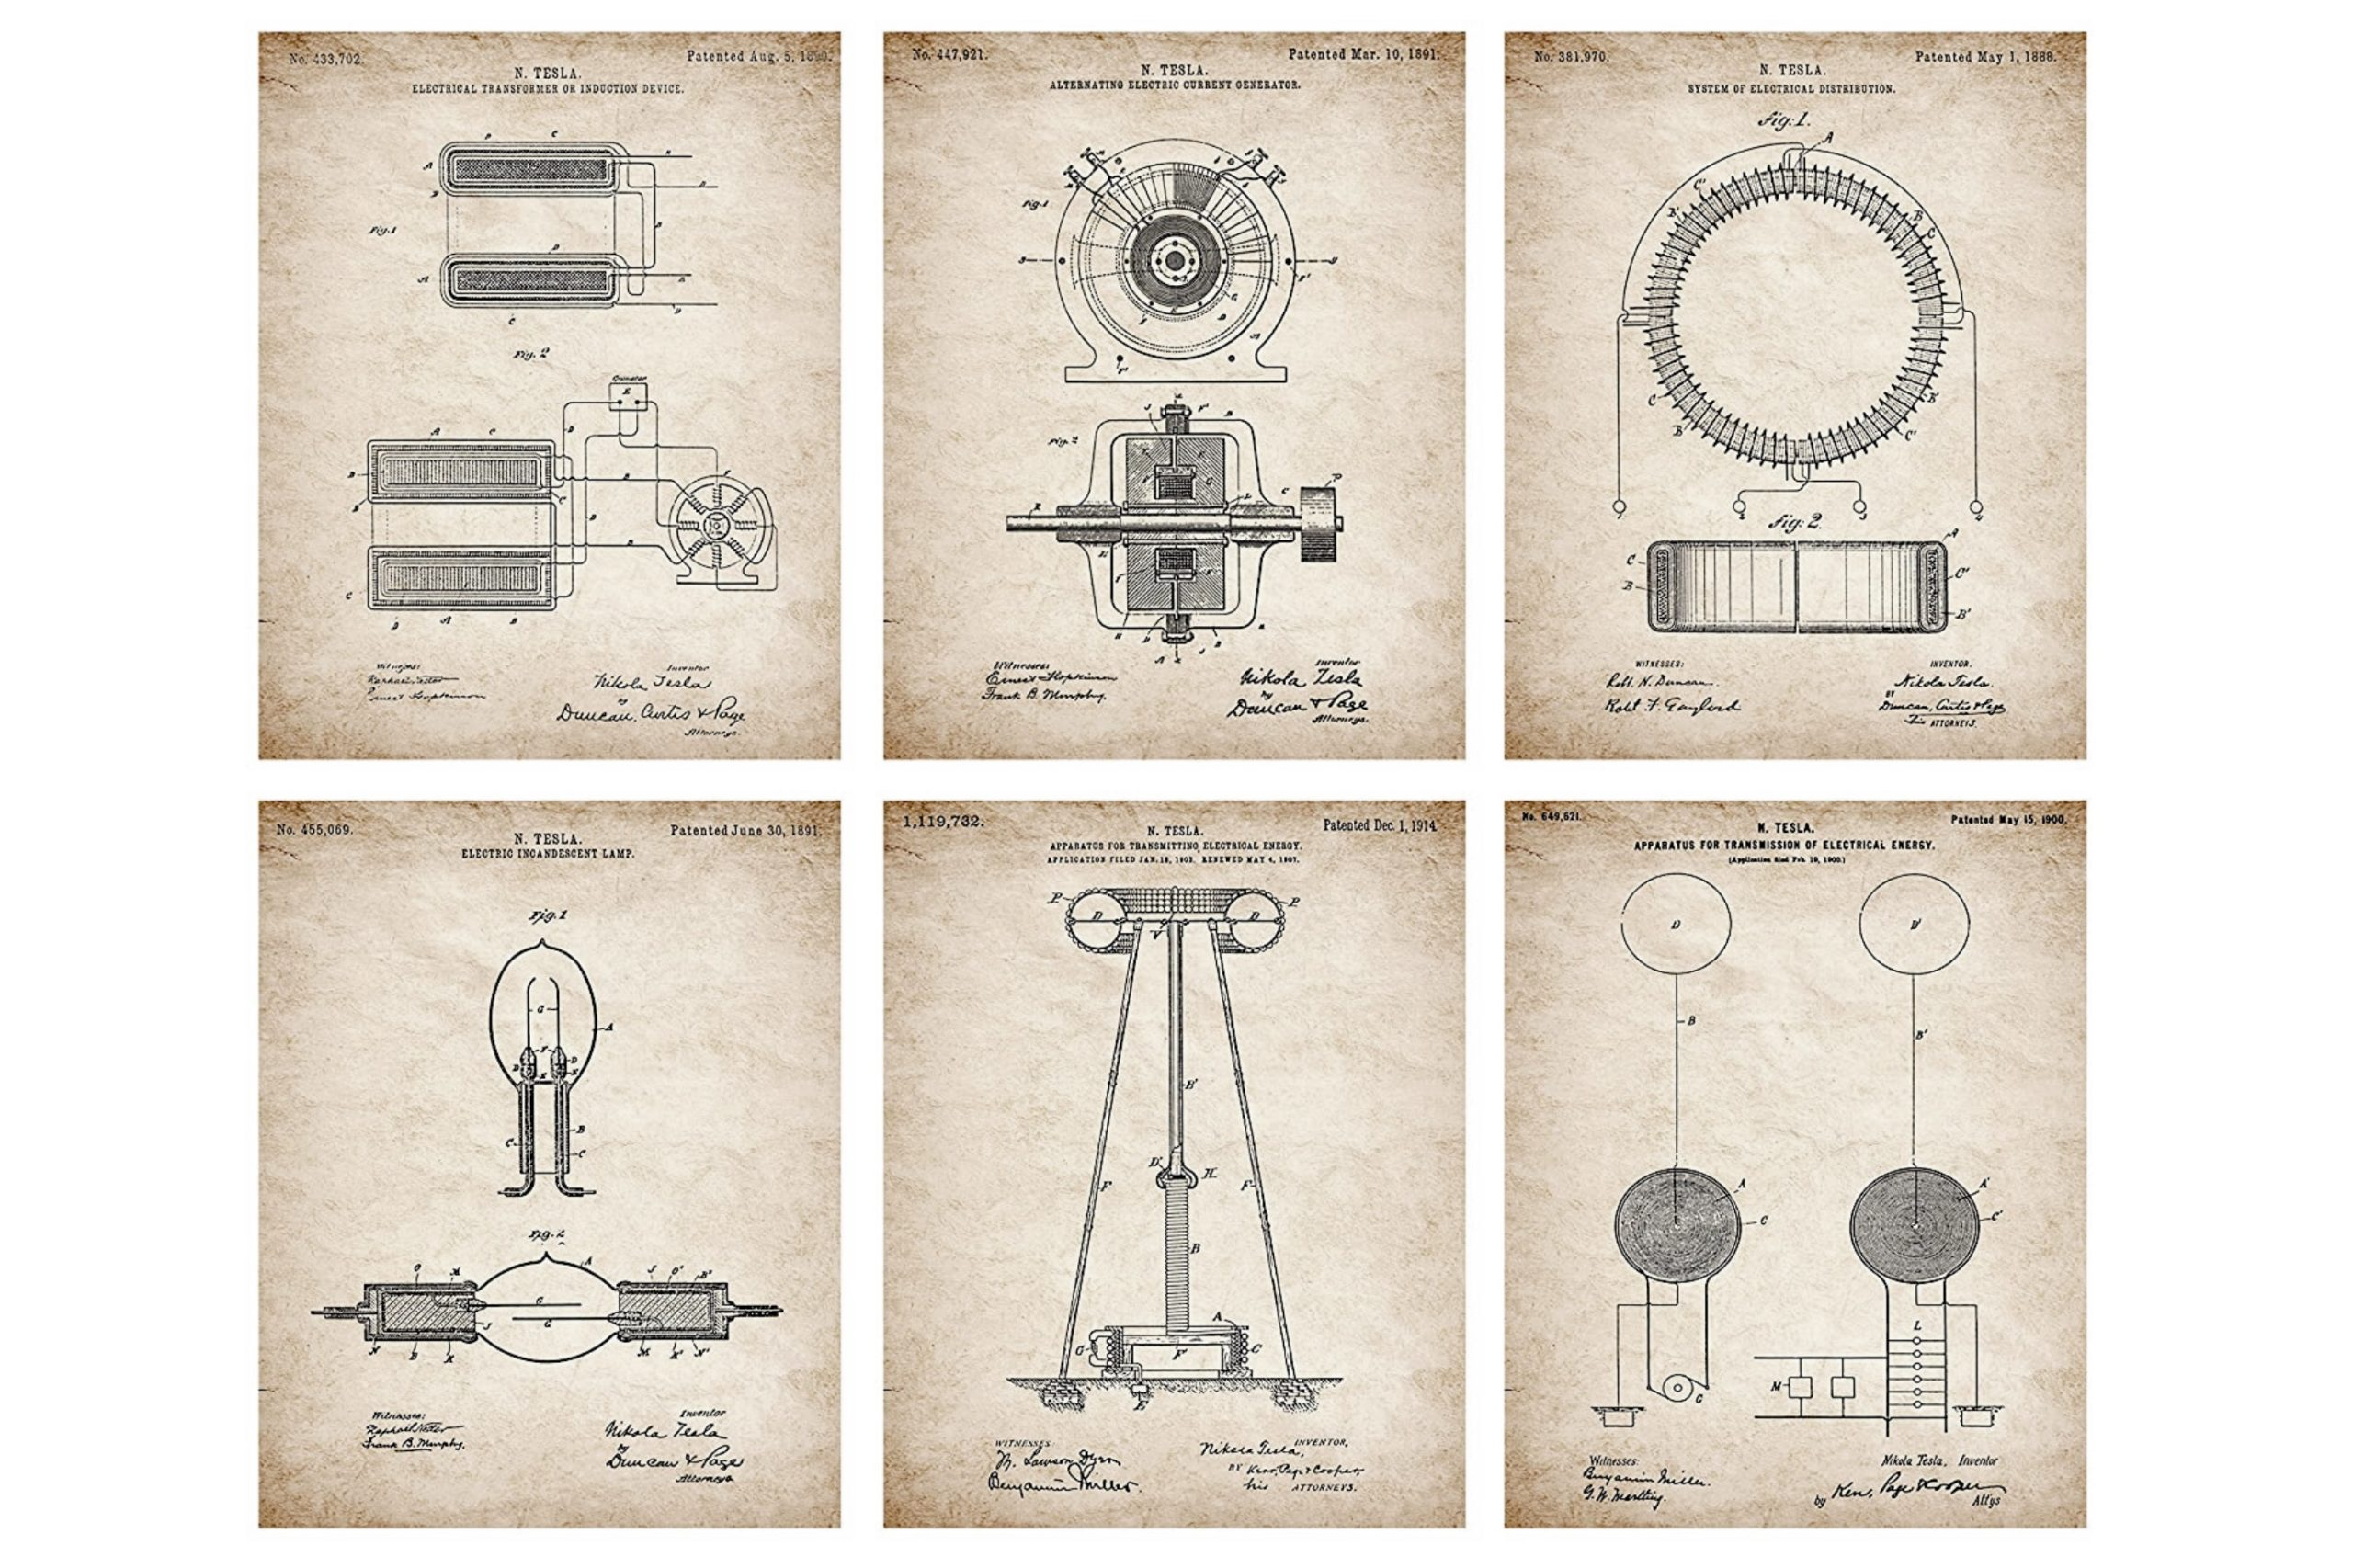 Patented inventions of Tesla